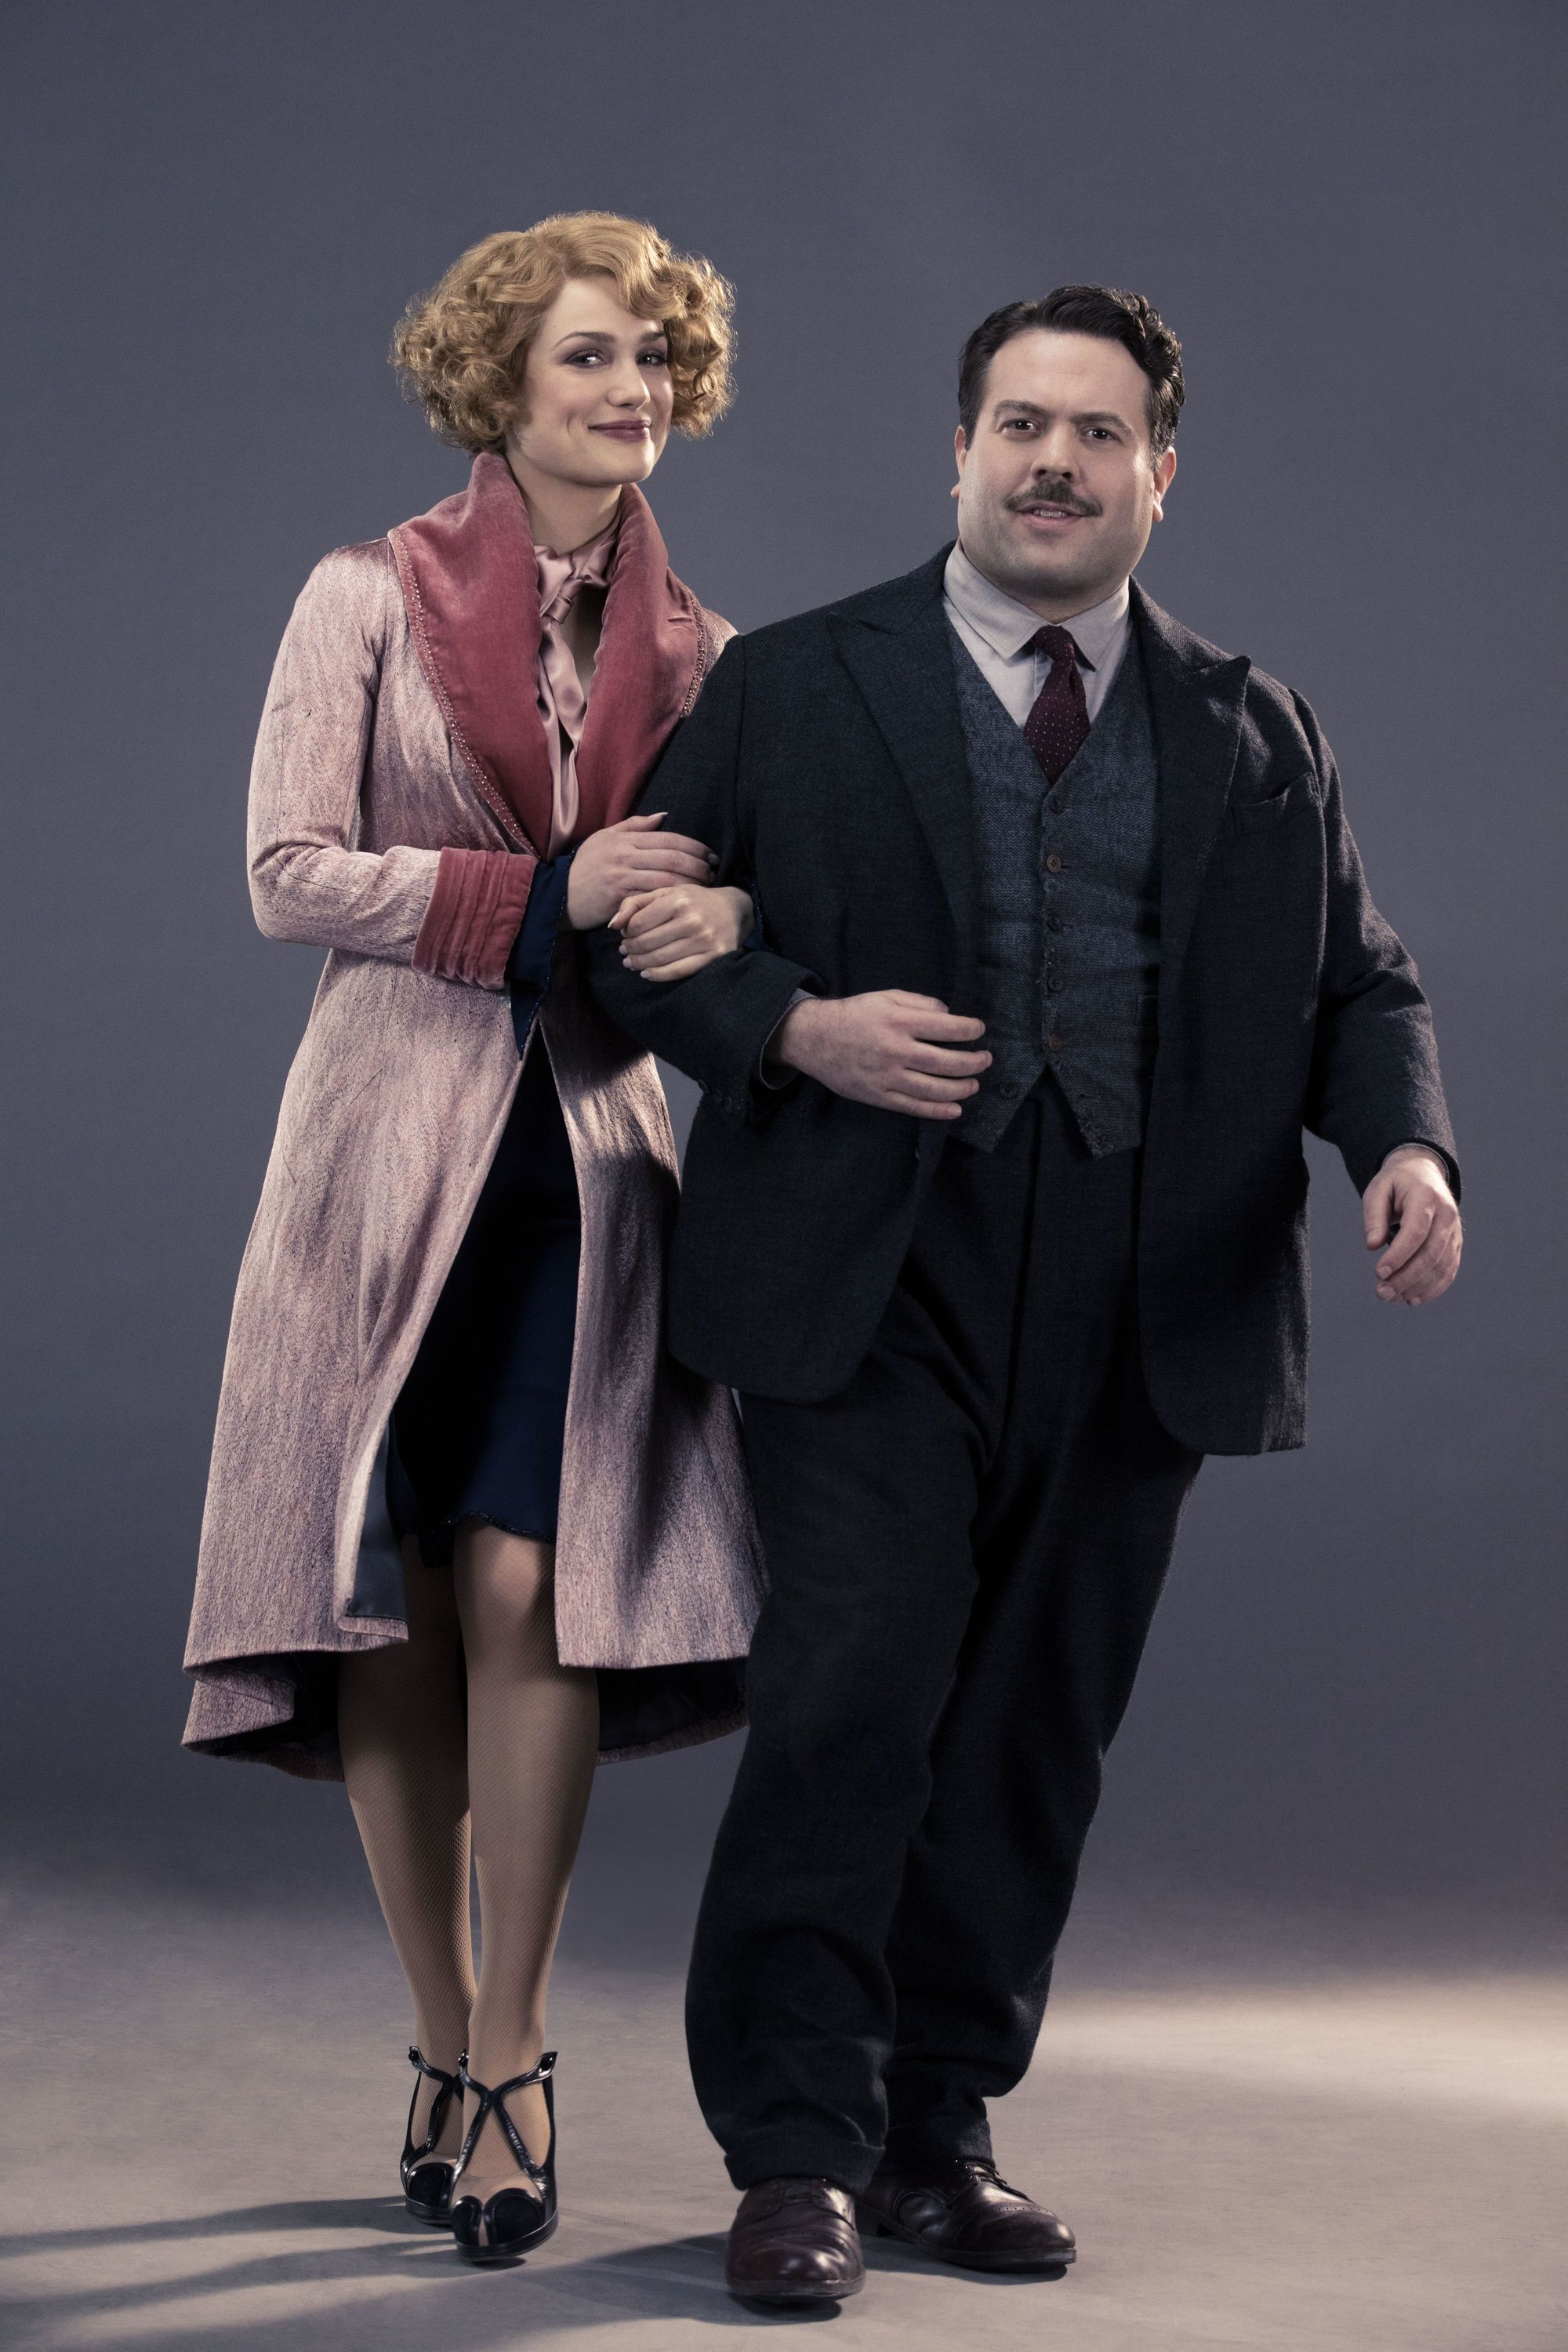 How Vernon And Petunia Dursley Are Described In The Books With